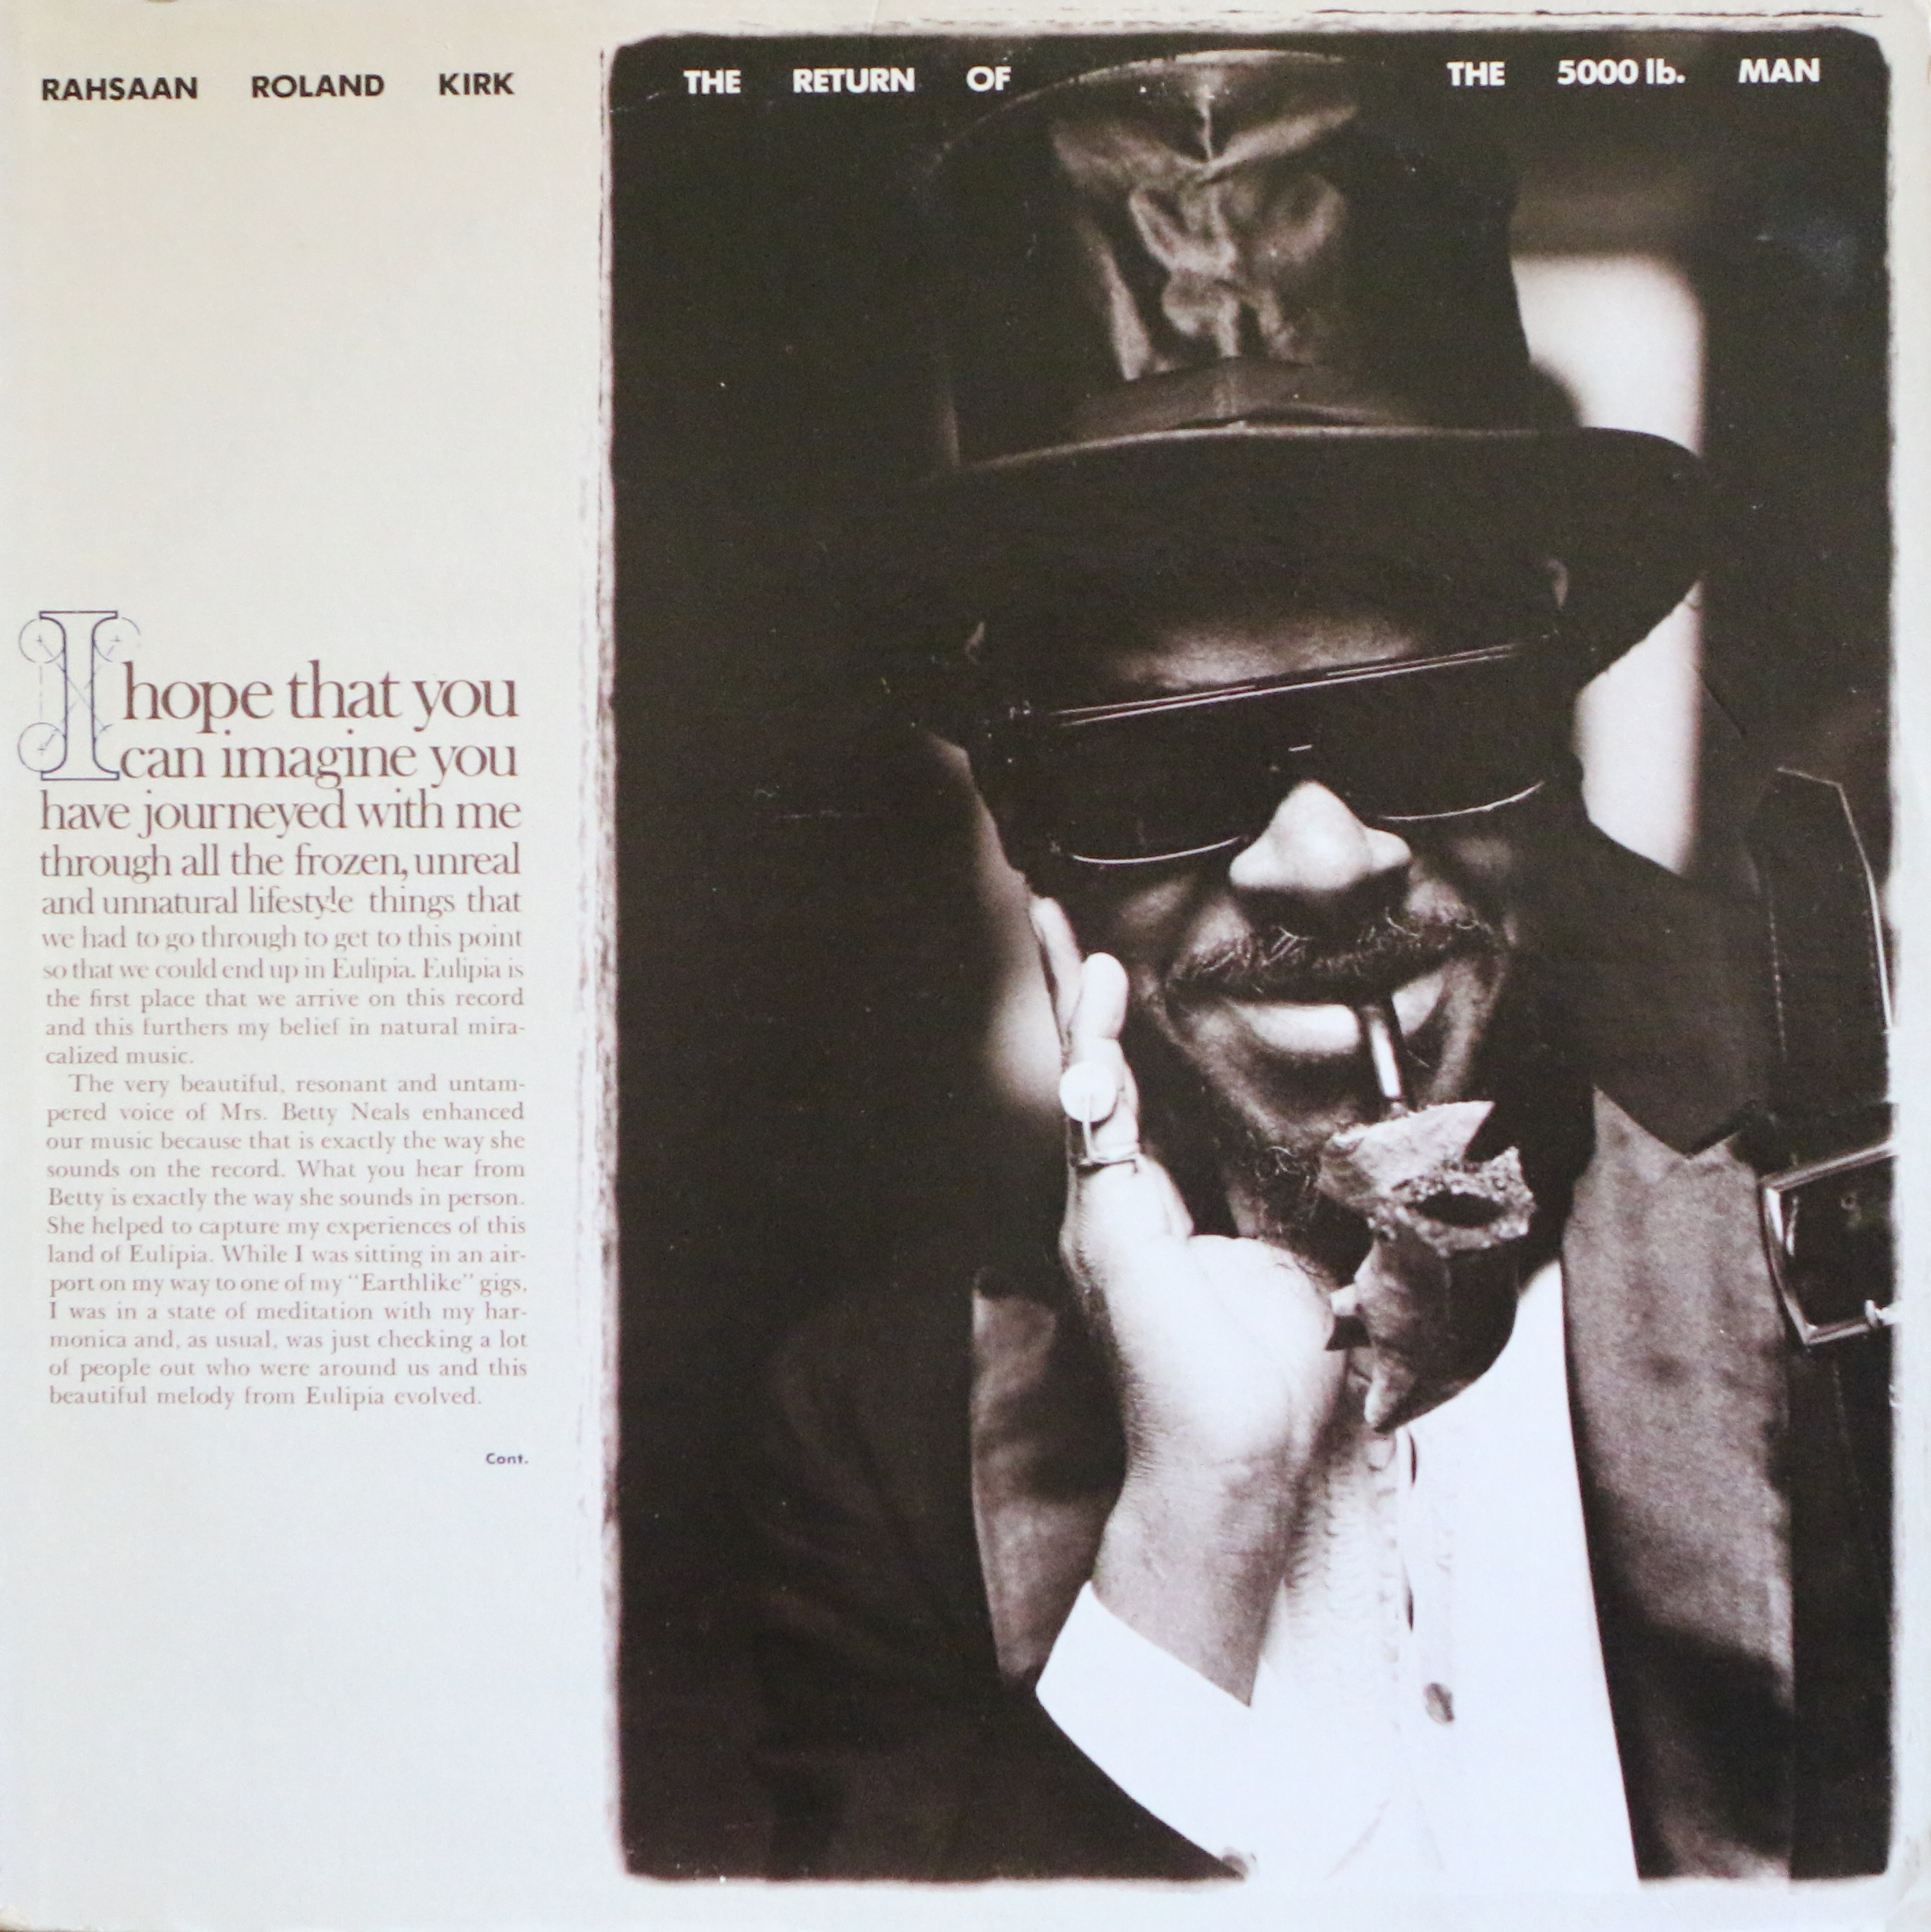 Dig Deep: Rahsaan Roland Kirk - The Return Of The 5,000LB Man - Warner Bros. (1976)